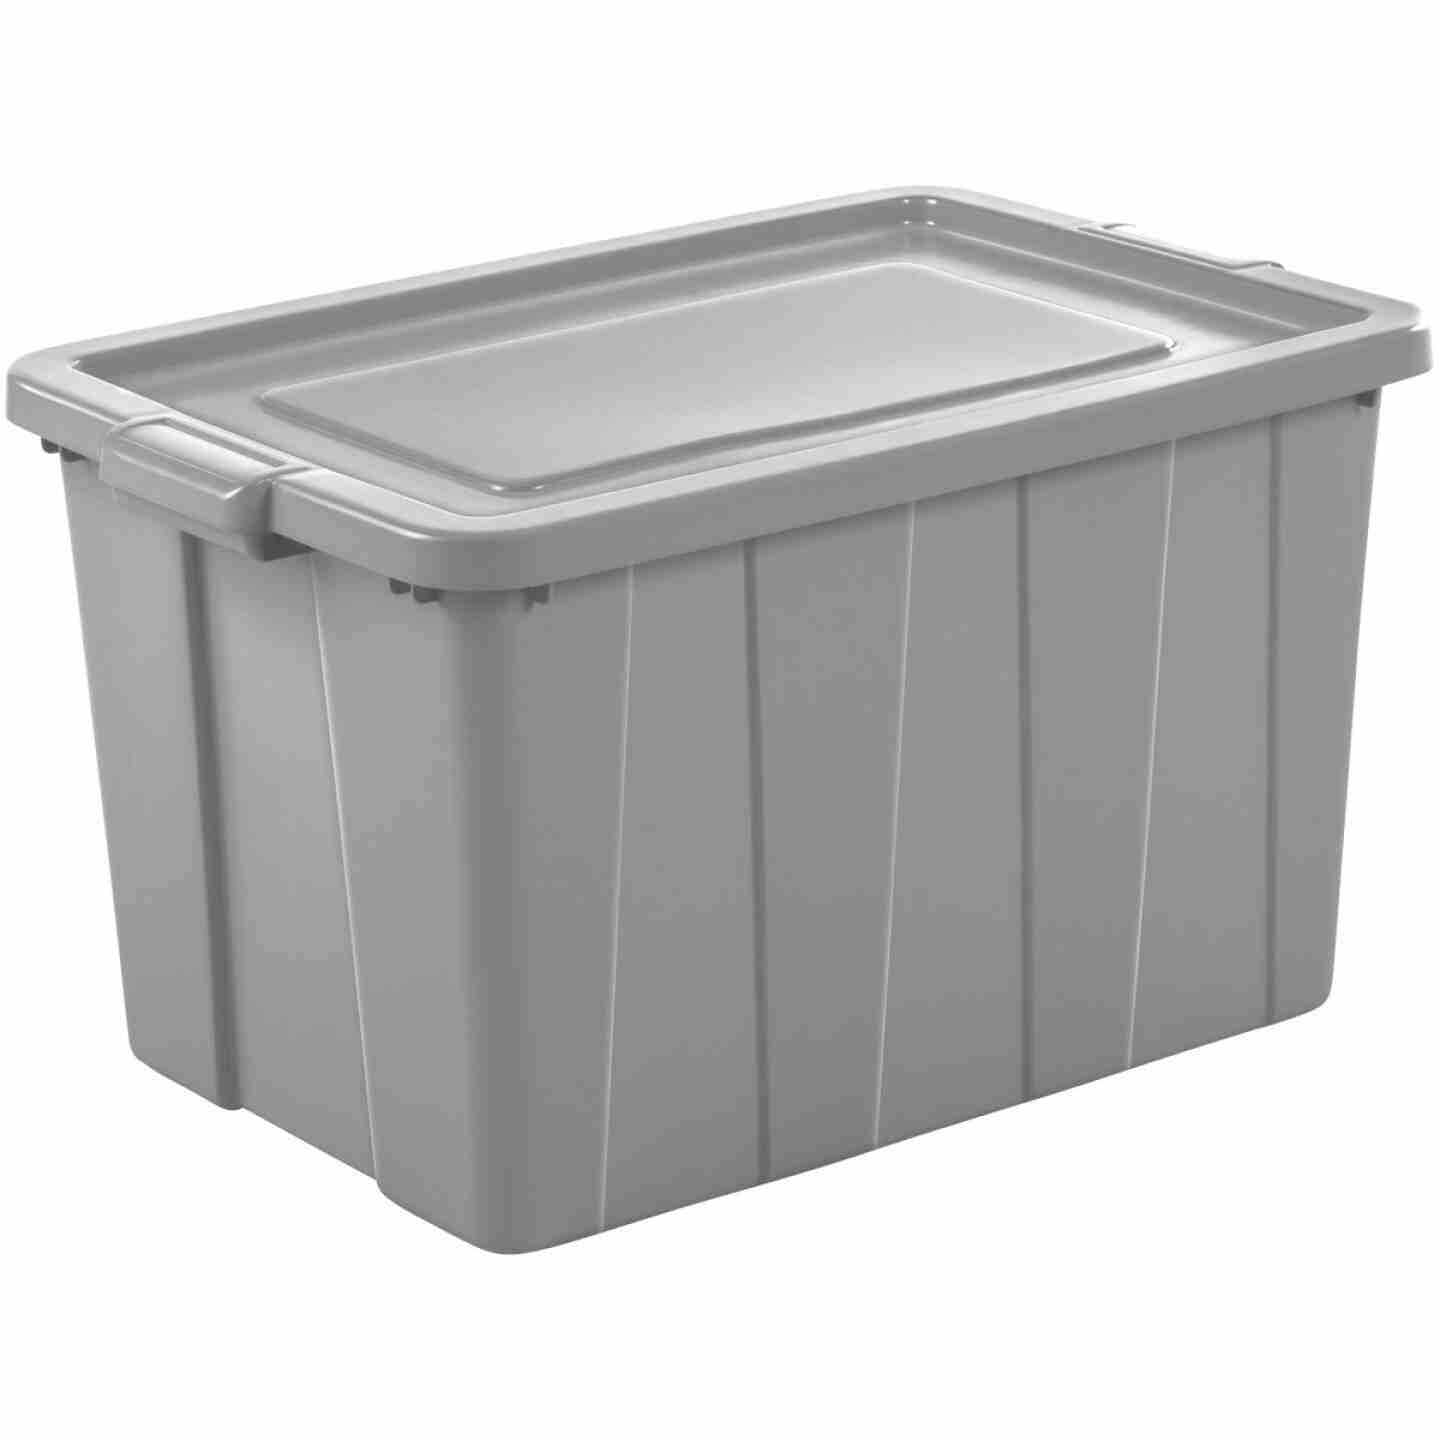 Sterilite Tuff1 30 Gal. Cement Tote with Handles Image 1